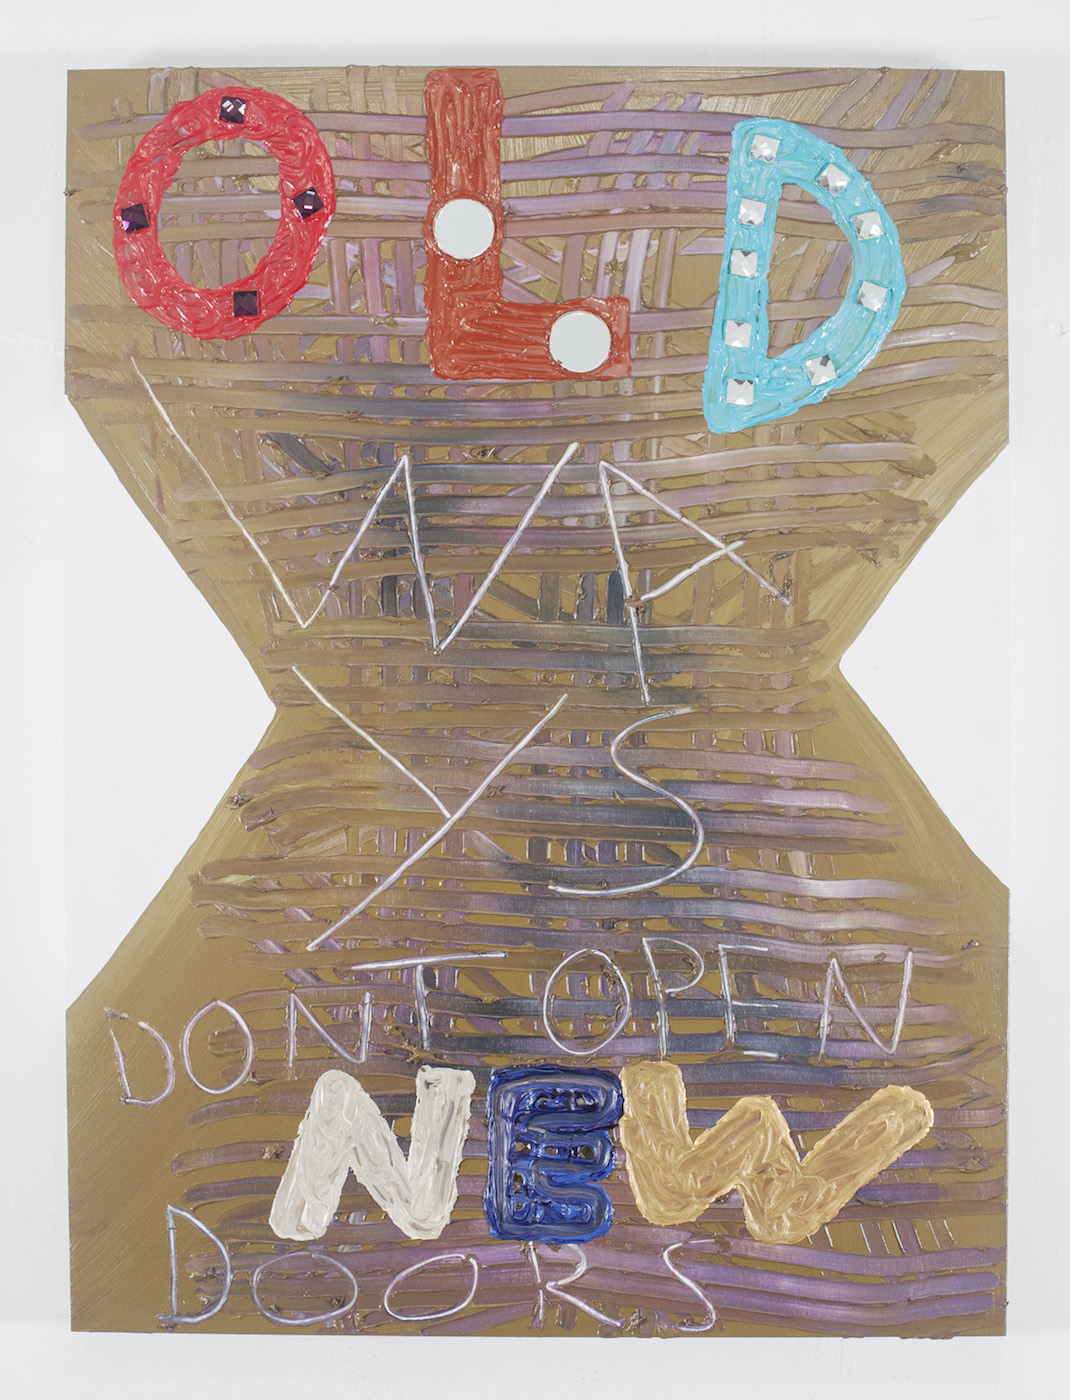 """Samuel Jablon, """"Old Ways"""" (2015), acrylic, mirror, and glass tile on wood panel, 40 x 30 in"""